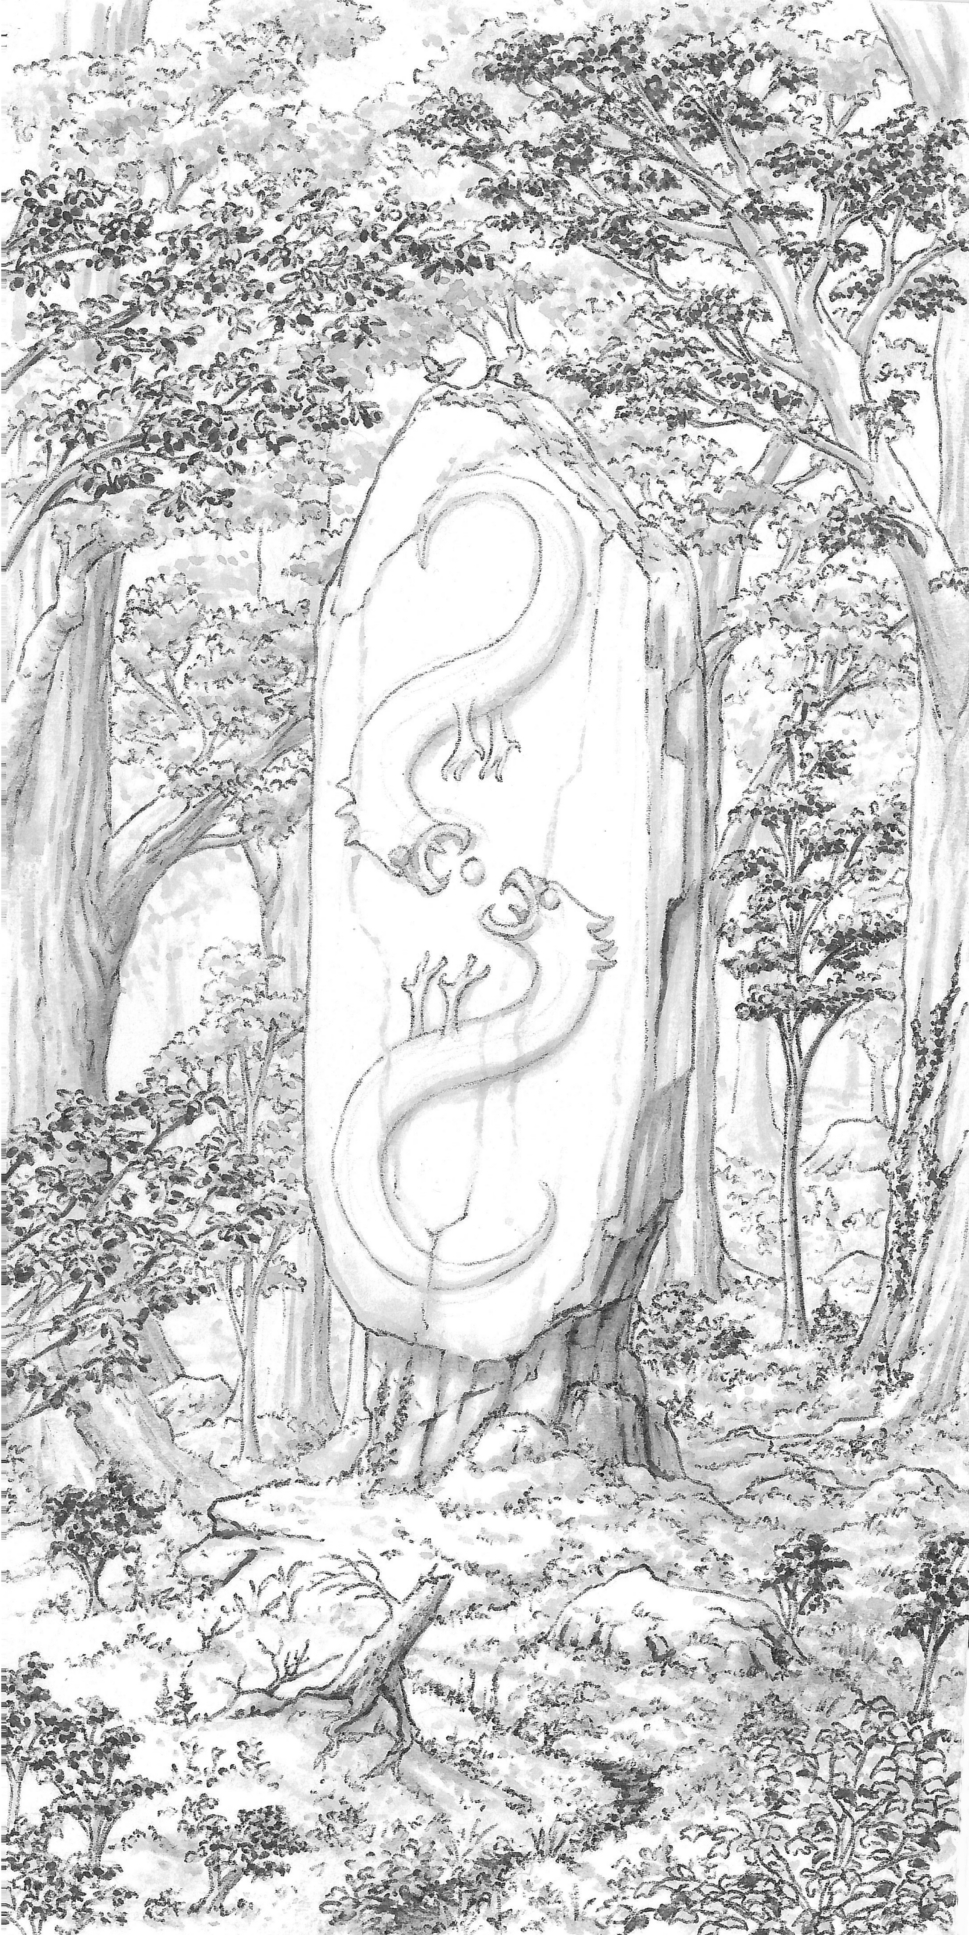 Carved monolith